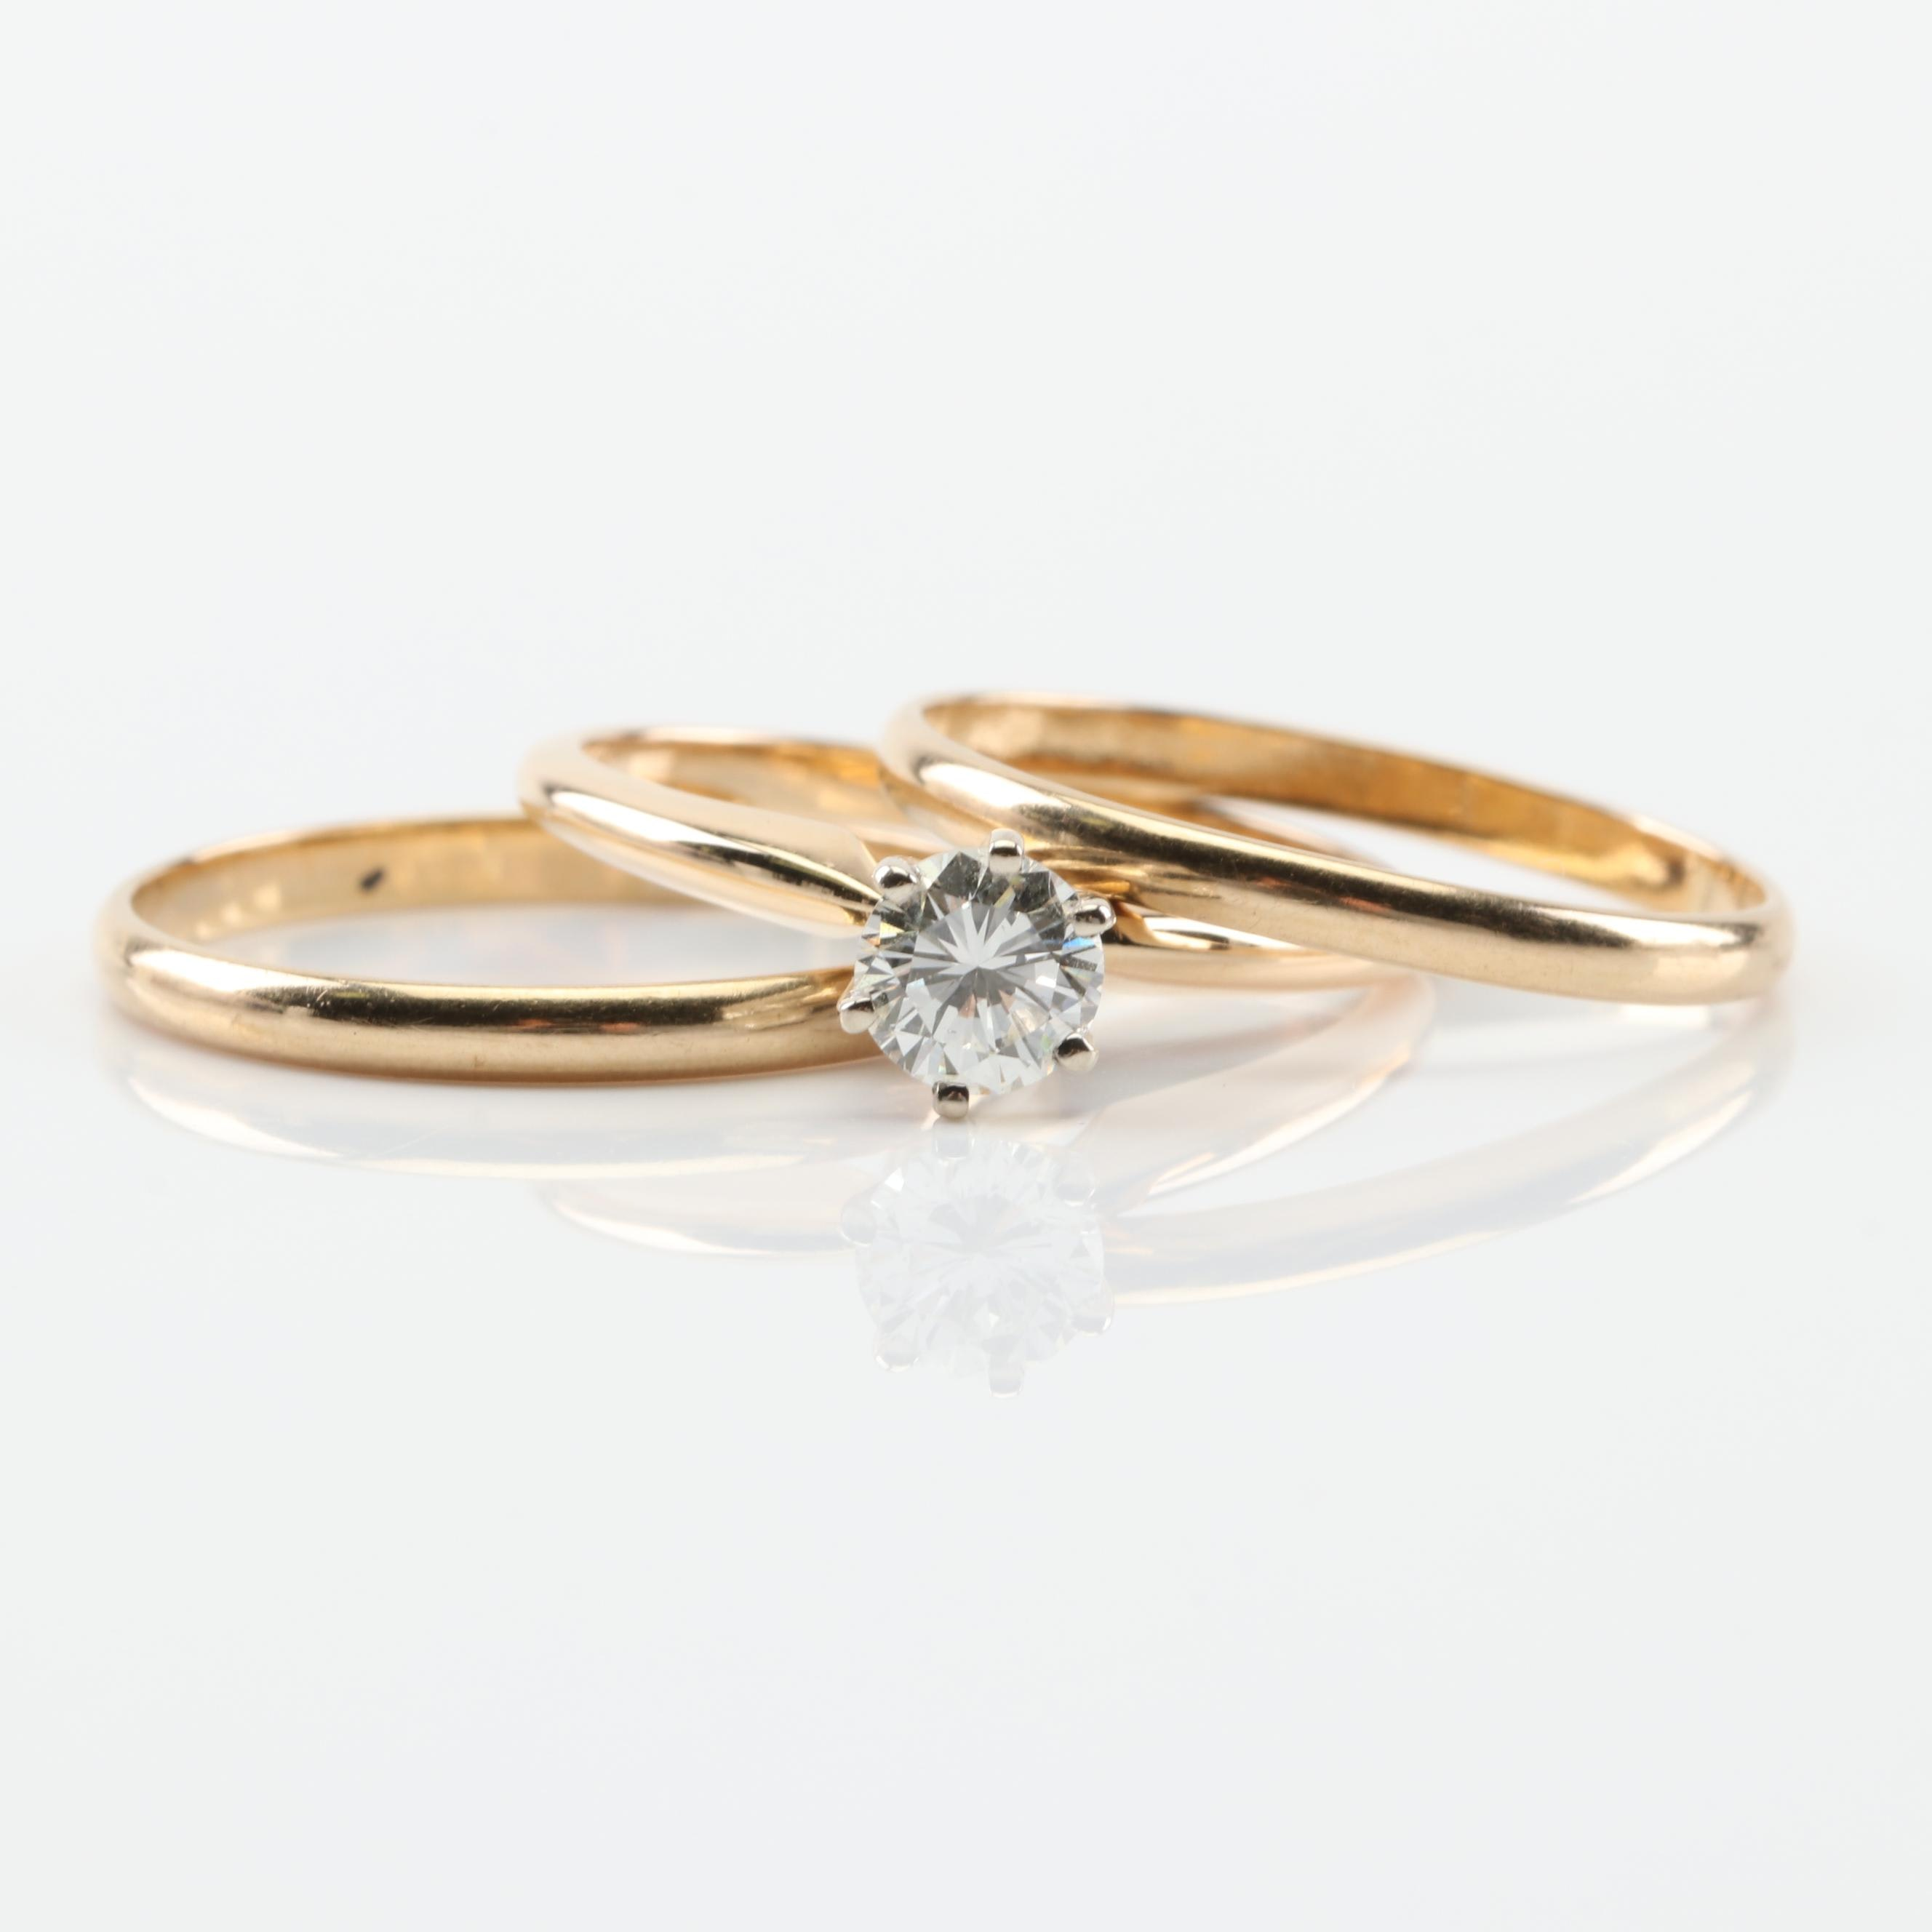 14K Yellow Gold Diamond Ring and 2.00 mm Bands